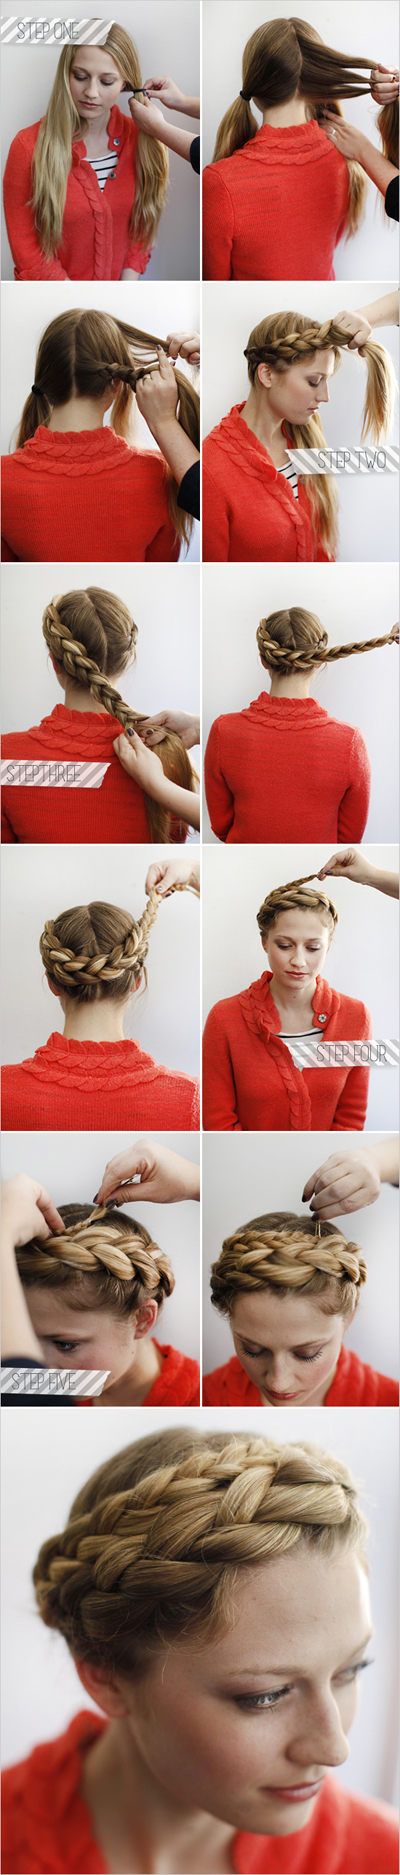 Halo Braided Hairstyle for Long Hair.